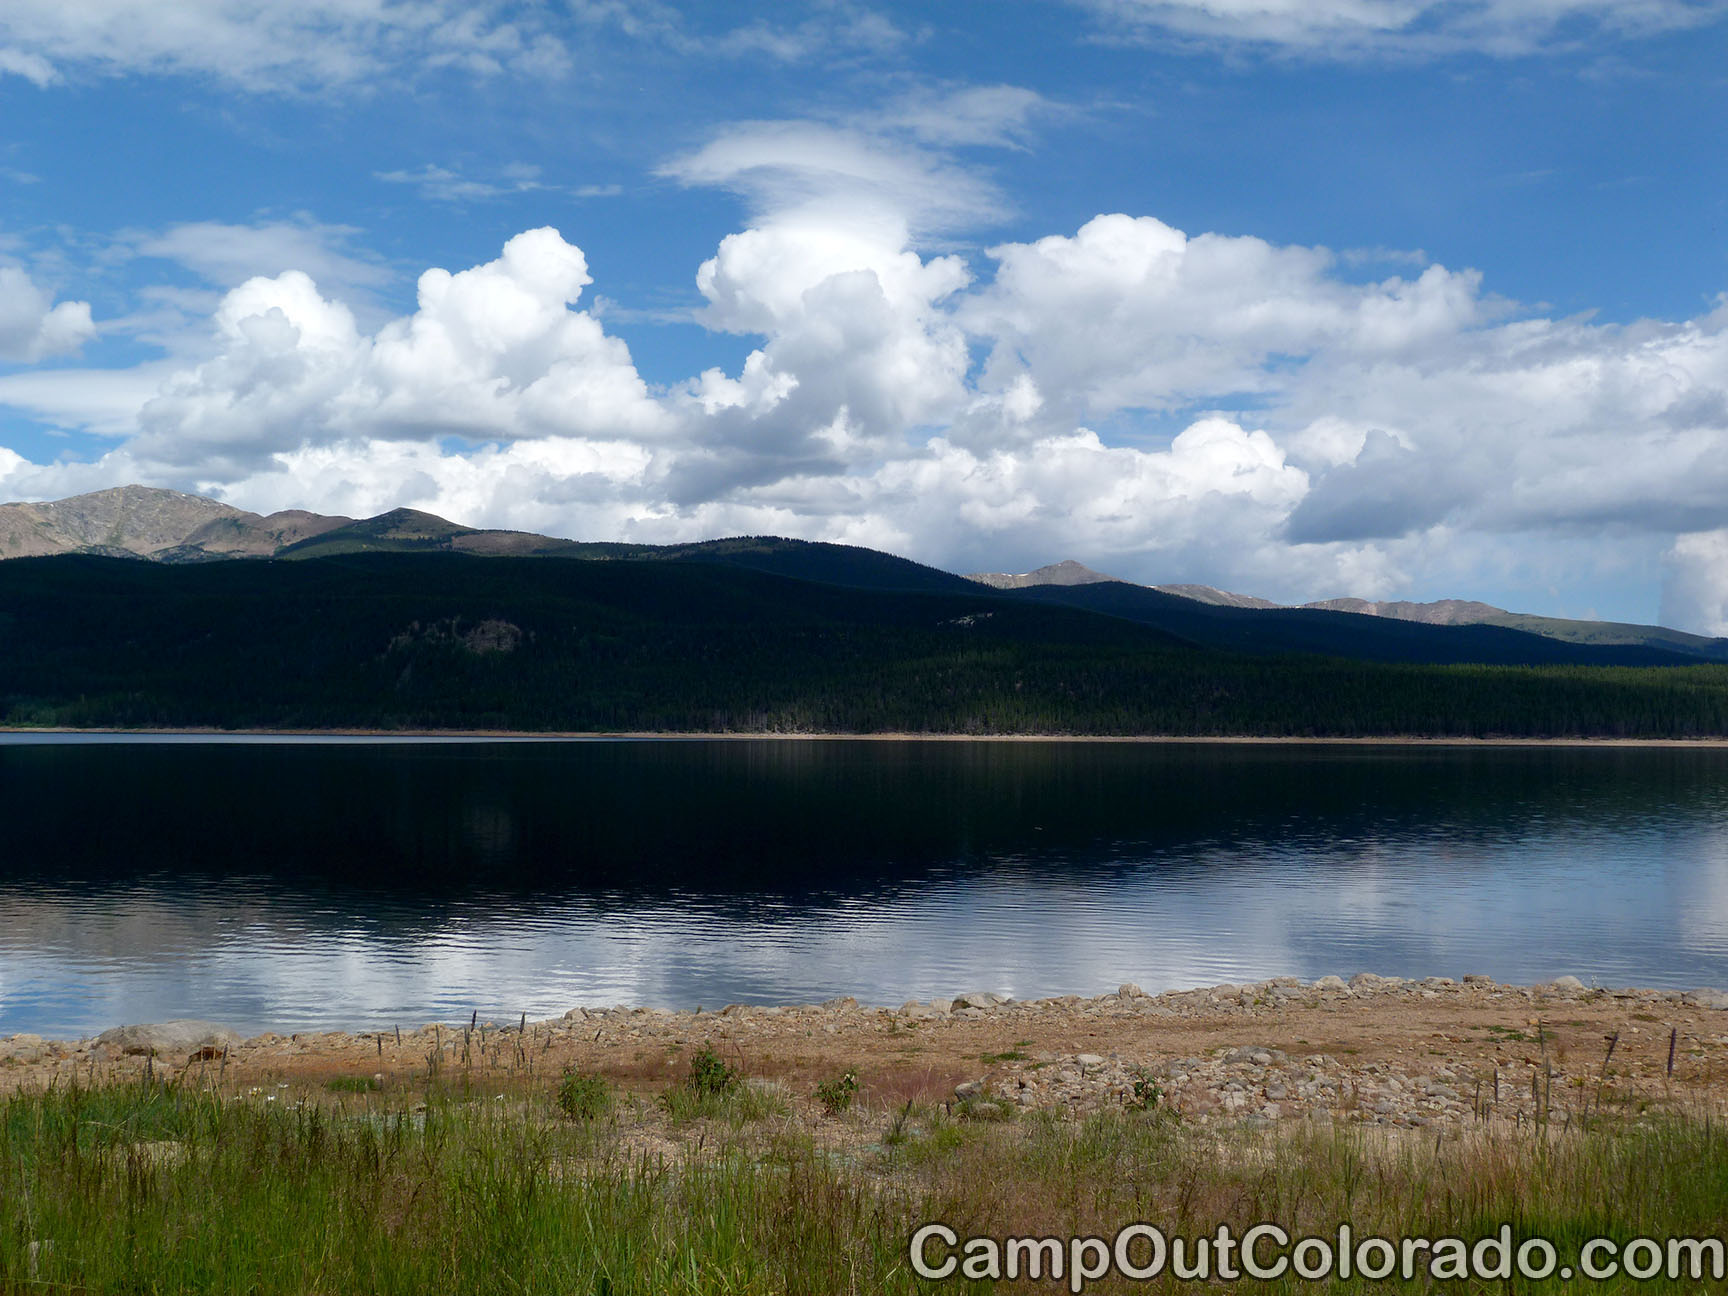 Camp-out-colorado-turquoise-lake-calm